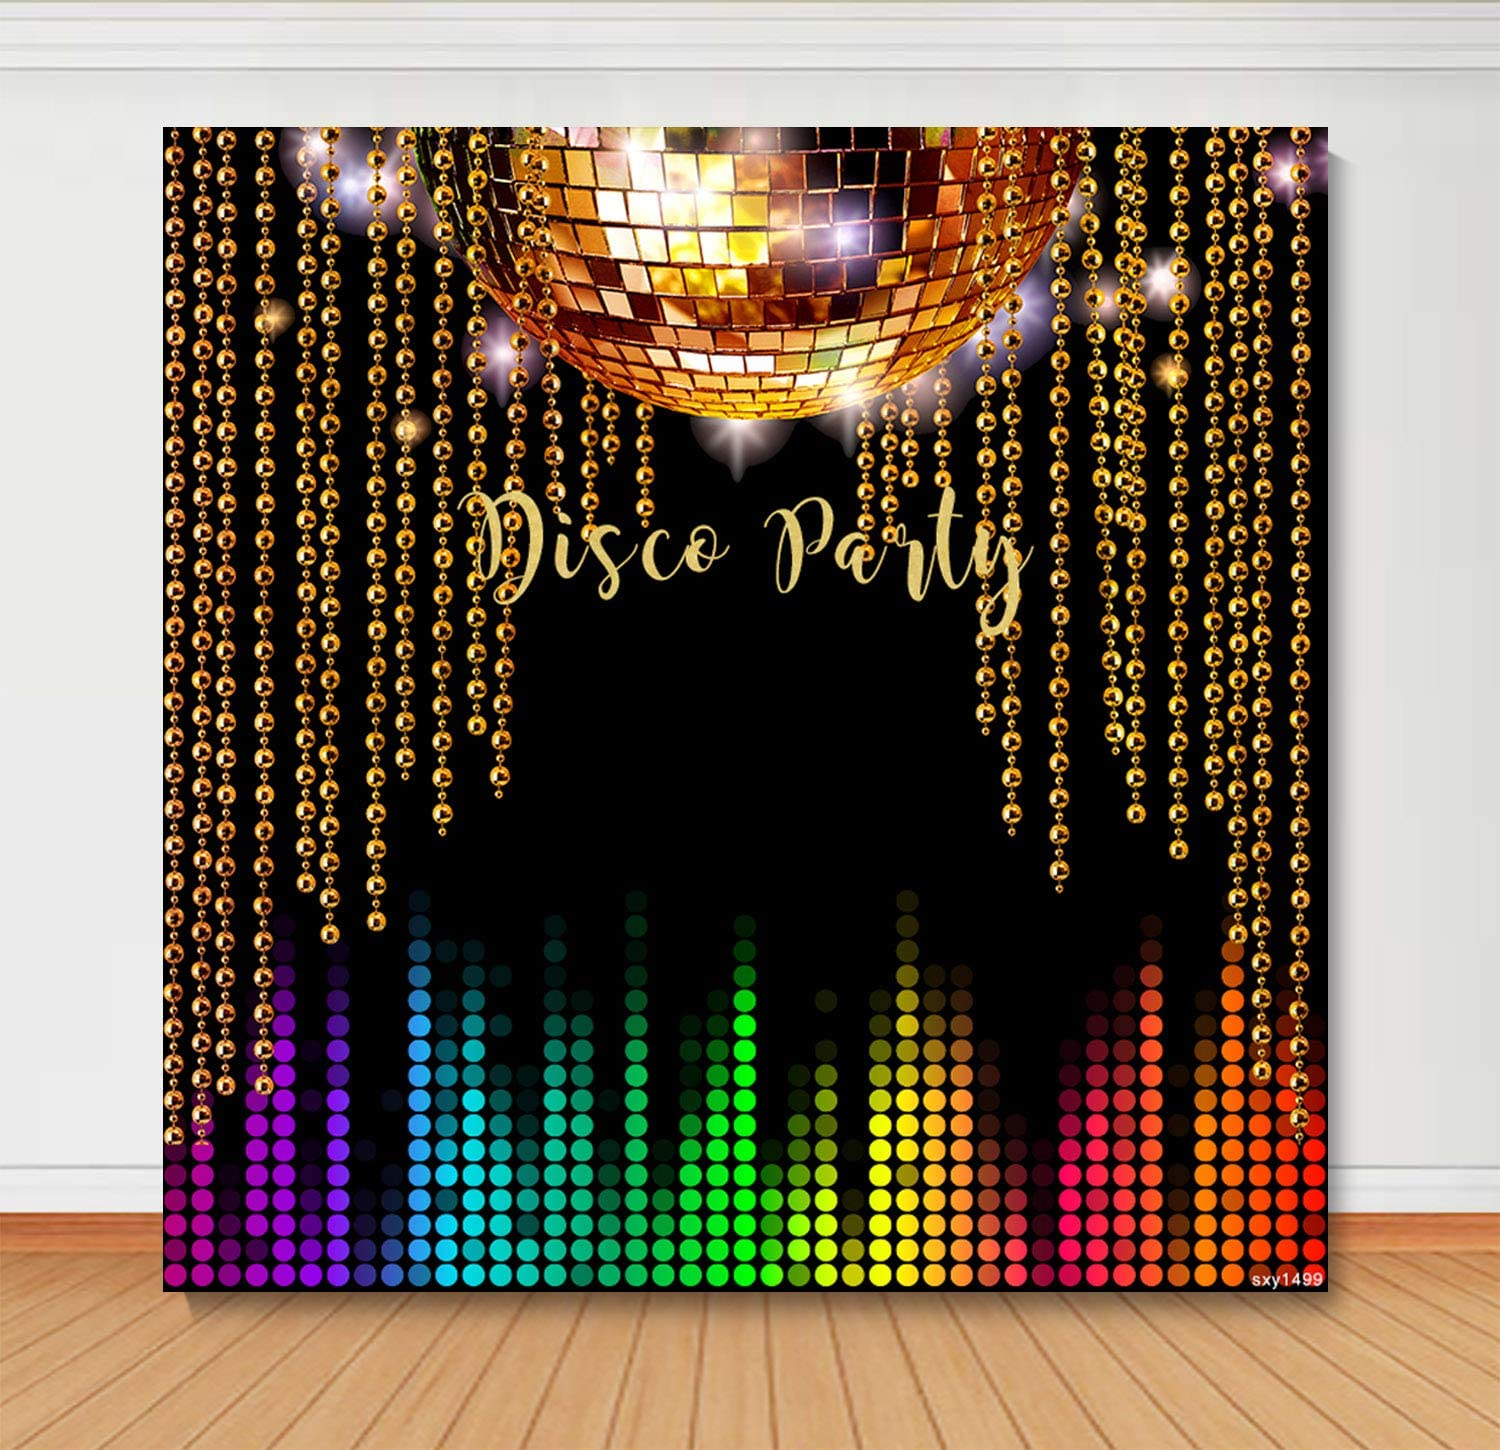 Sensfun Vintage 70s 80s Disco Party Backdrop Colorful Shiny Neon Night Lets Glow Crazy in the Dark Dance Photography Background Adults Birthday Decoration Banner Photo Booth Props 6x6ft Vinyl